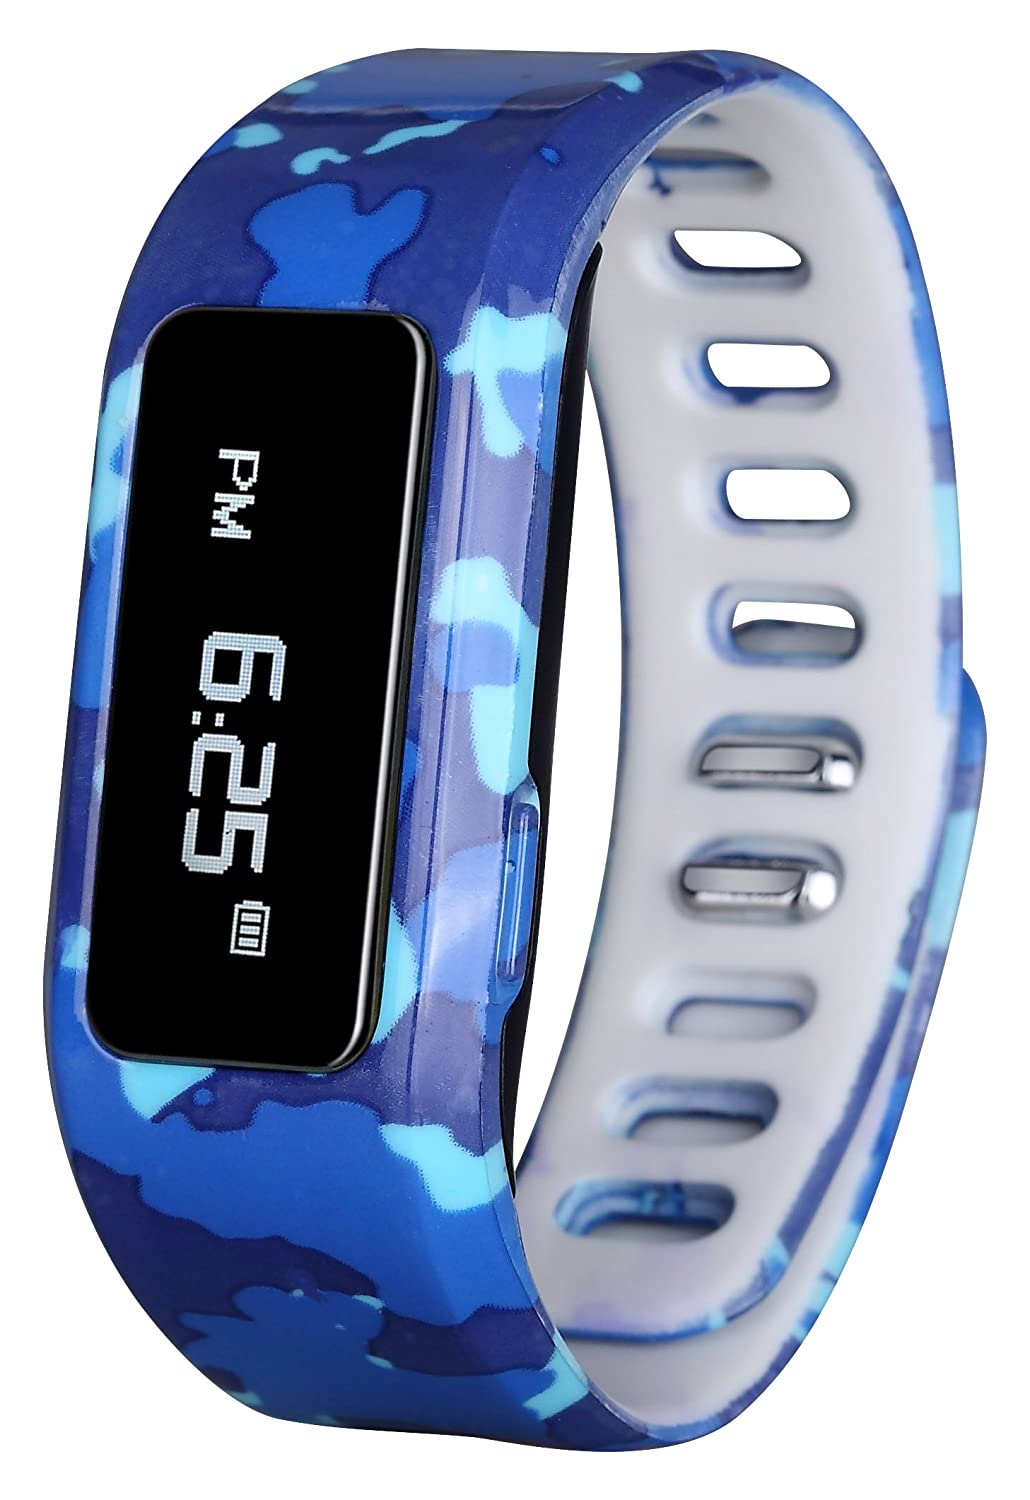 GabbaGoods GG-KAT-BCA Kids Fitness Watch Activity Tracker for Kids